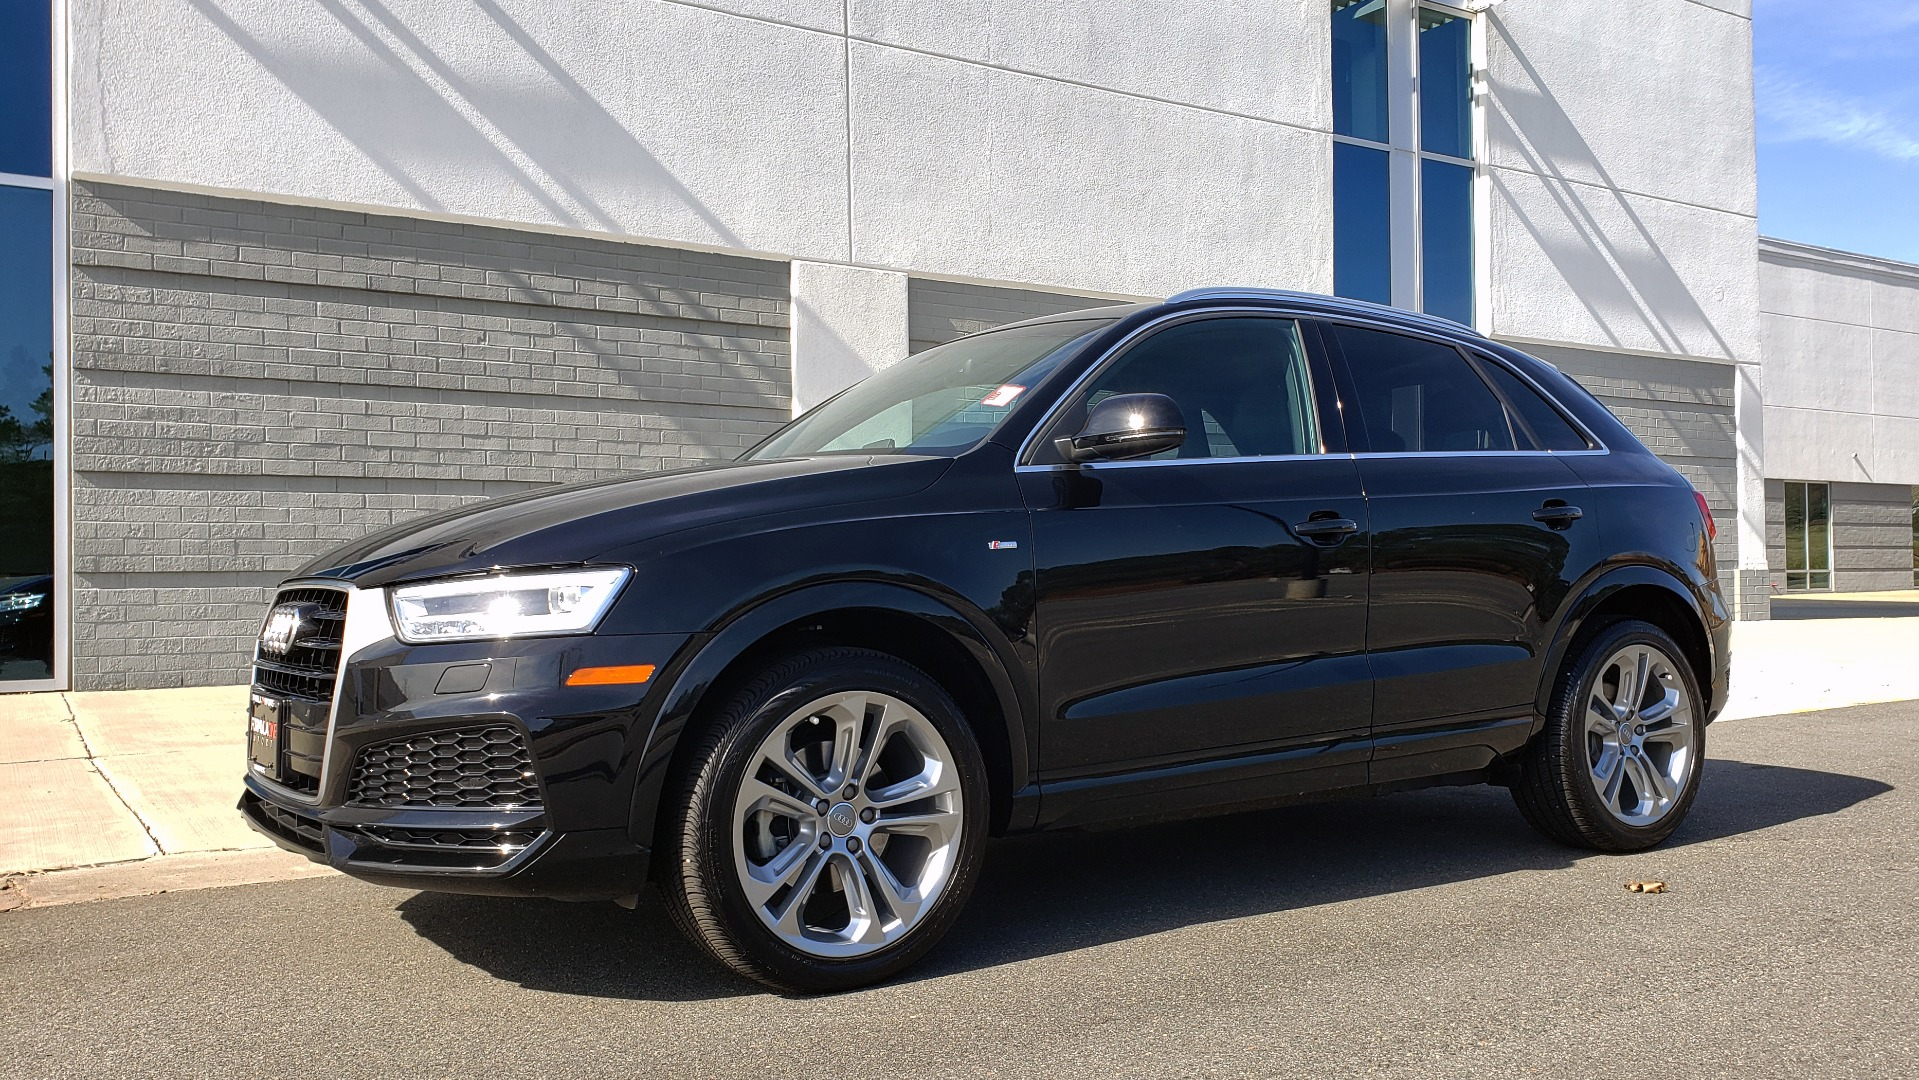 Used 2018 Audi Q3 SPORT PREMIUM PLUS / TECHNOLOGY / SUNROOF / BOSE / REARVIEW for sale Sold at Formula Imports in Charlotte NC 28227 2